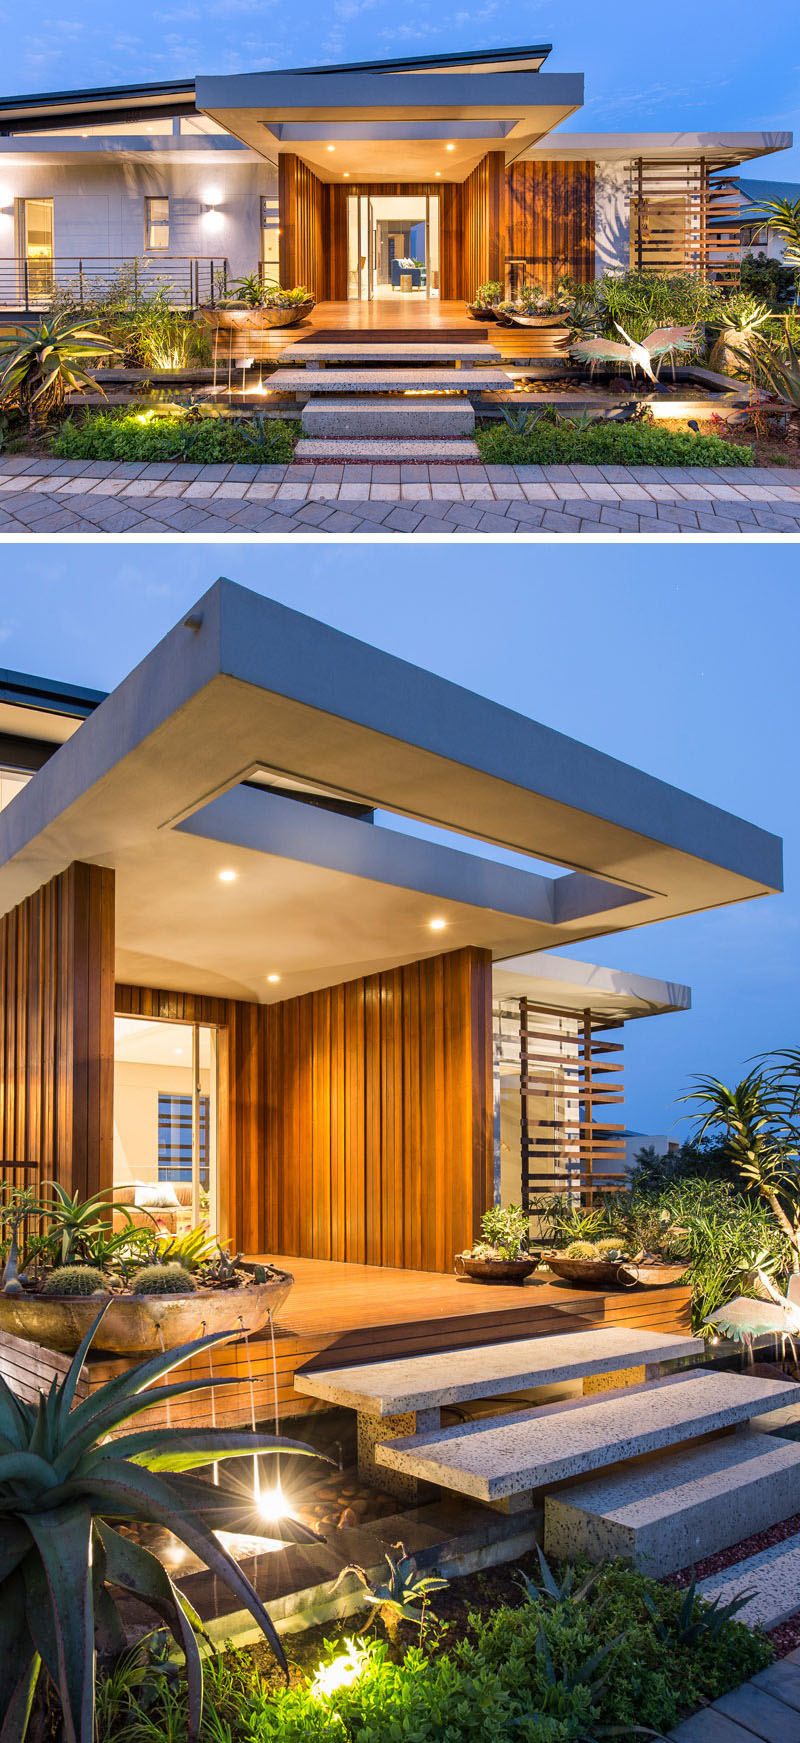 Contemporary House Entrance Design: This House In South Africa Was Designed Around An Indoor Swimming Pool